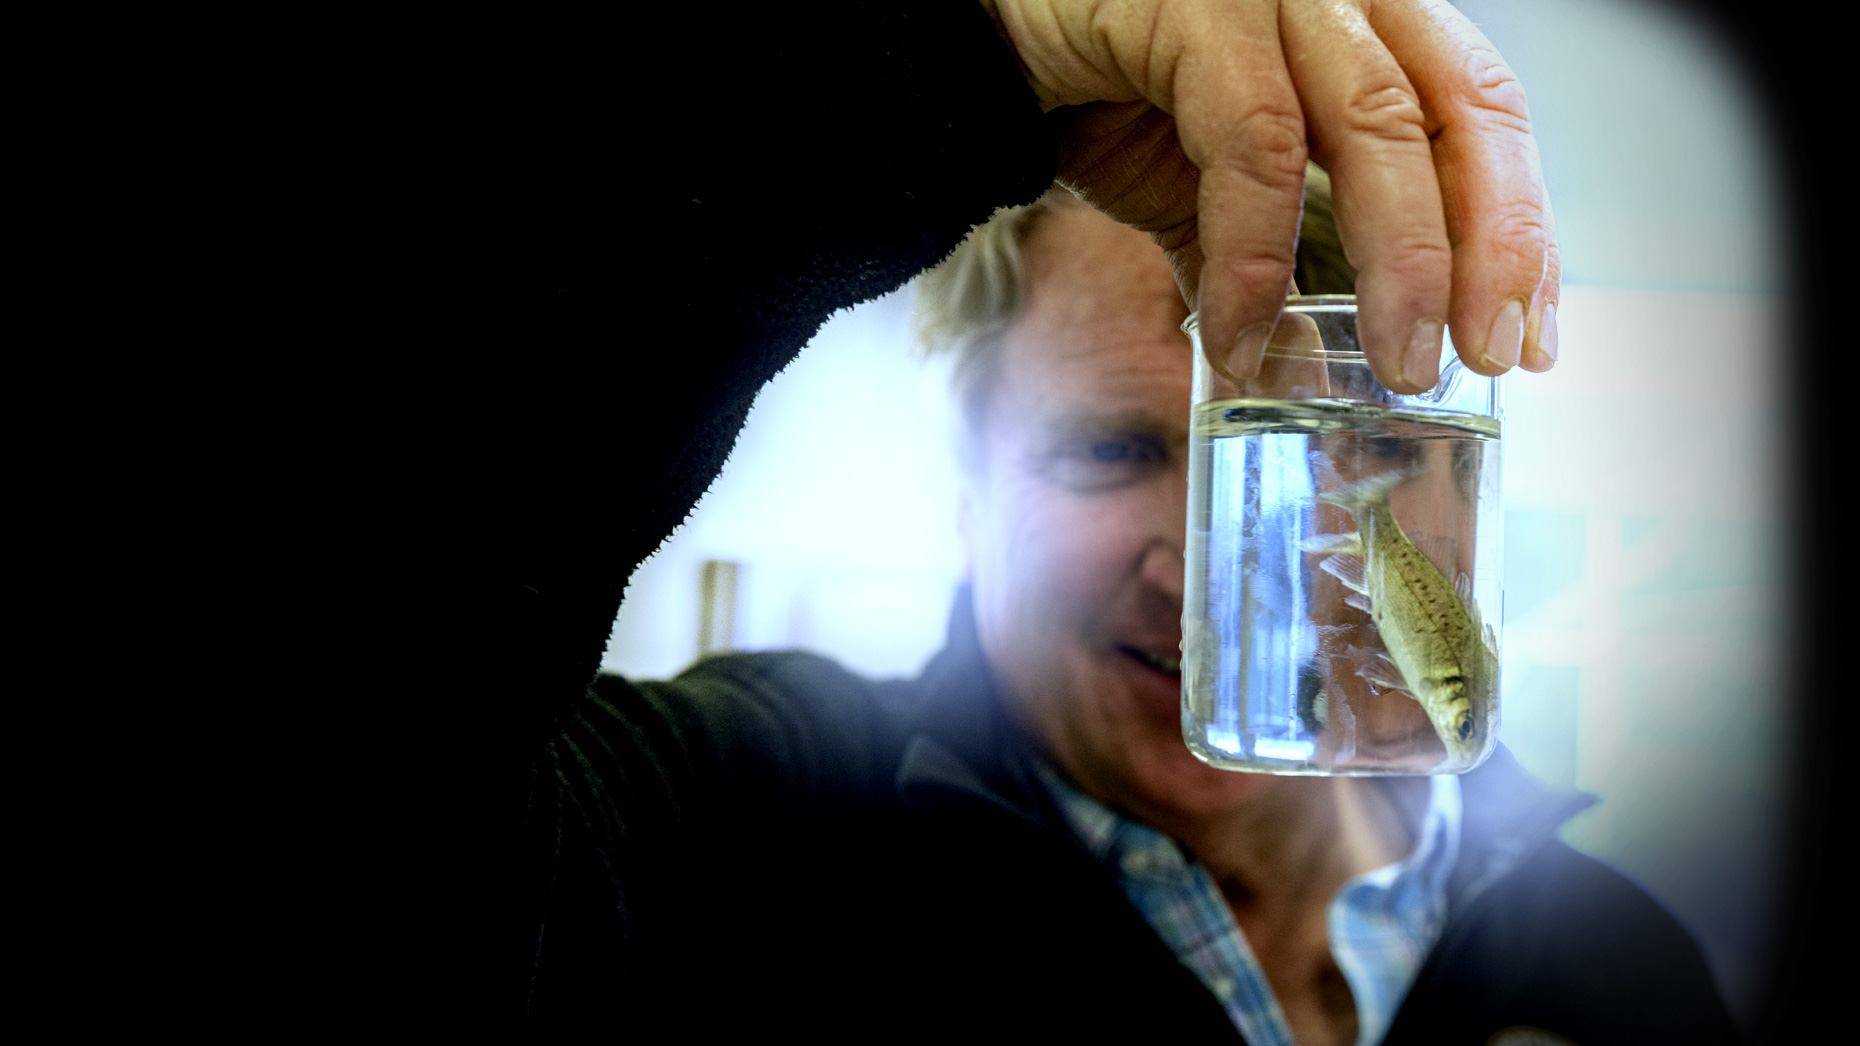 Eric Pedersen looks at one of his branzino in a beaker at the Ideal Fish facility in Waterbury